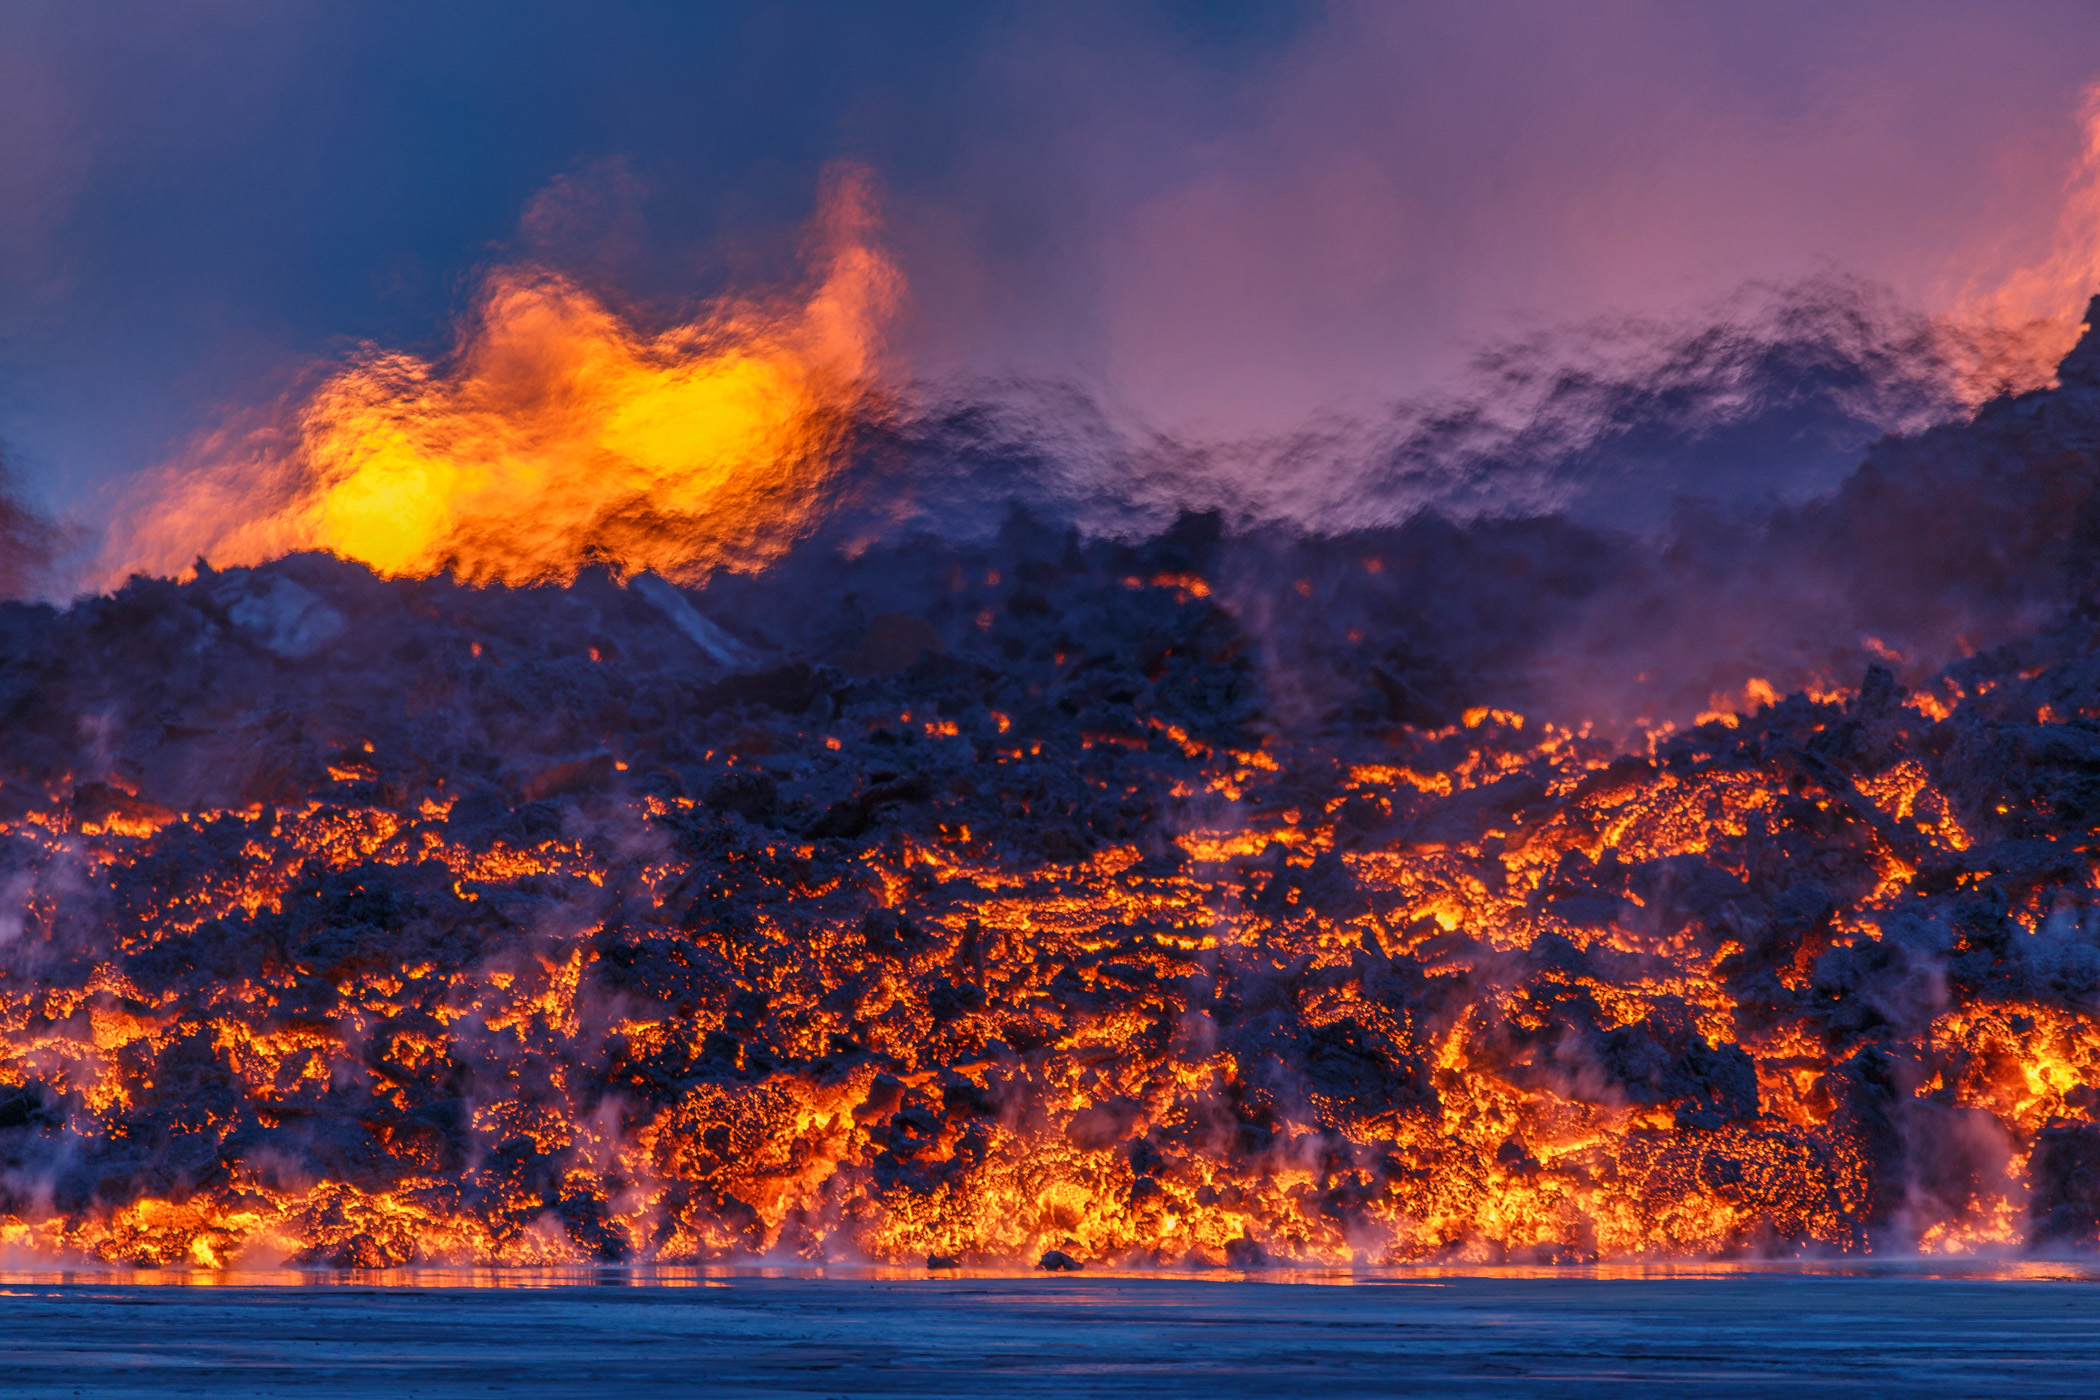 Heat from the lava distorts the view of the fountains in the distance near Bardarbunga. Sept. 2.